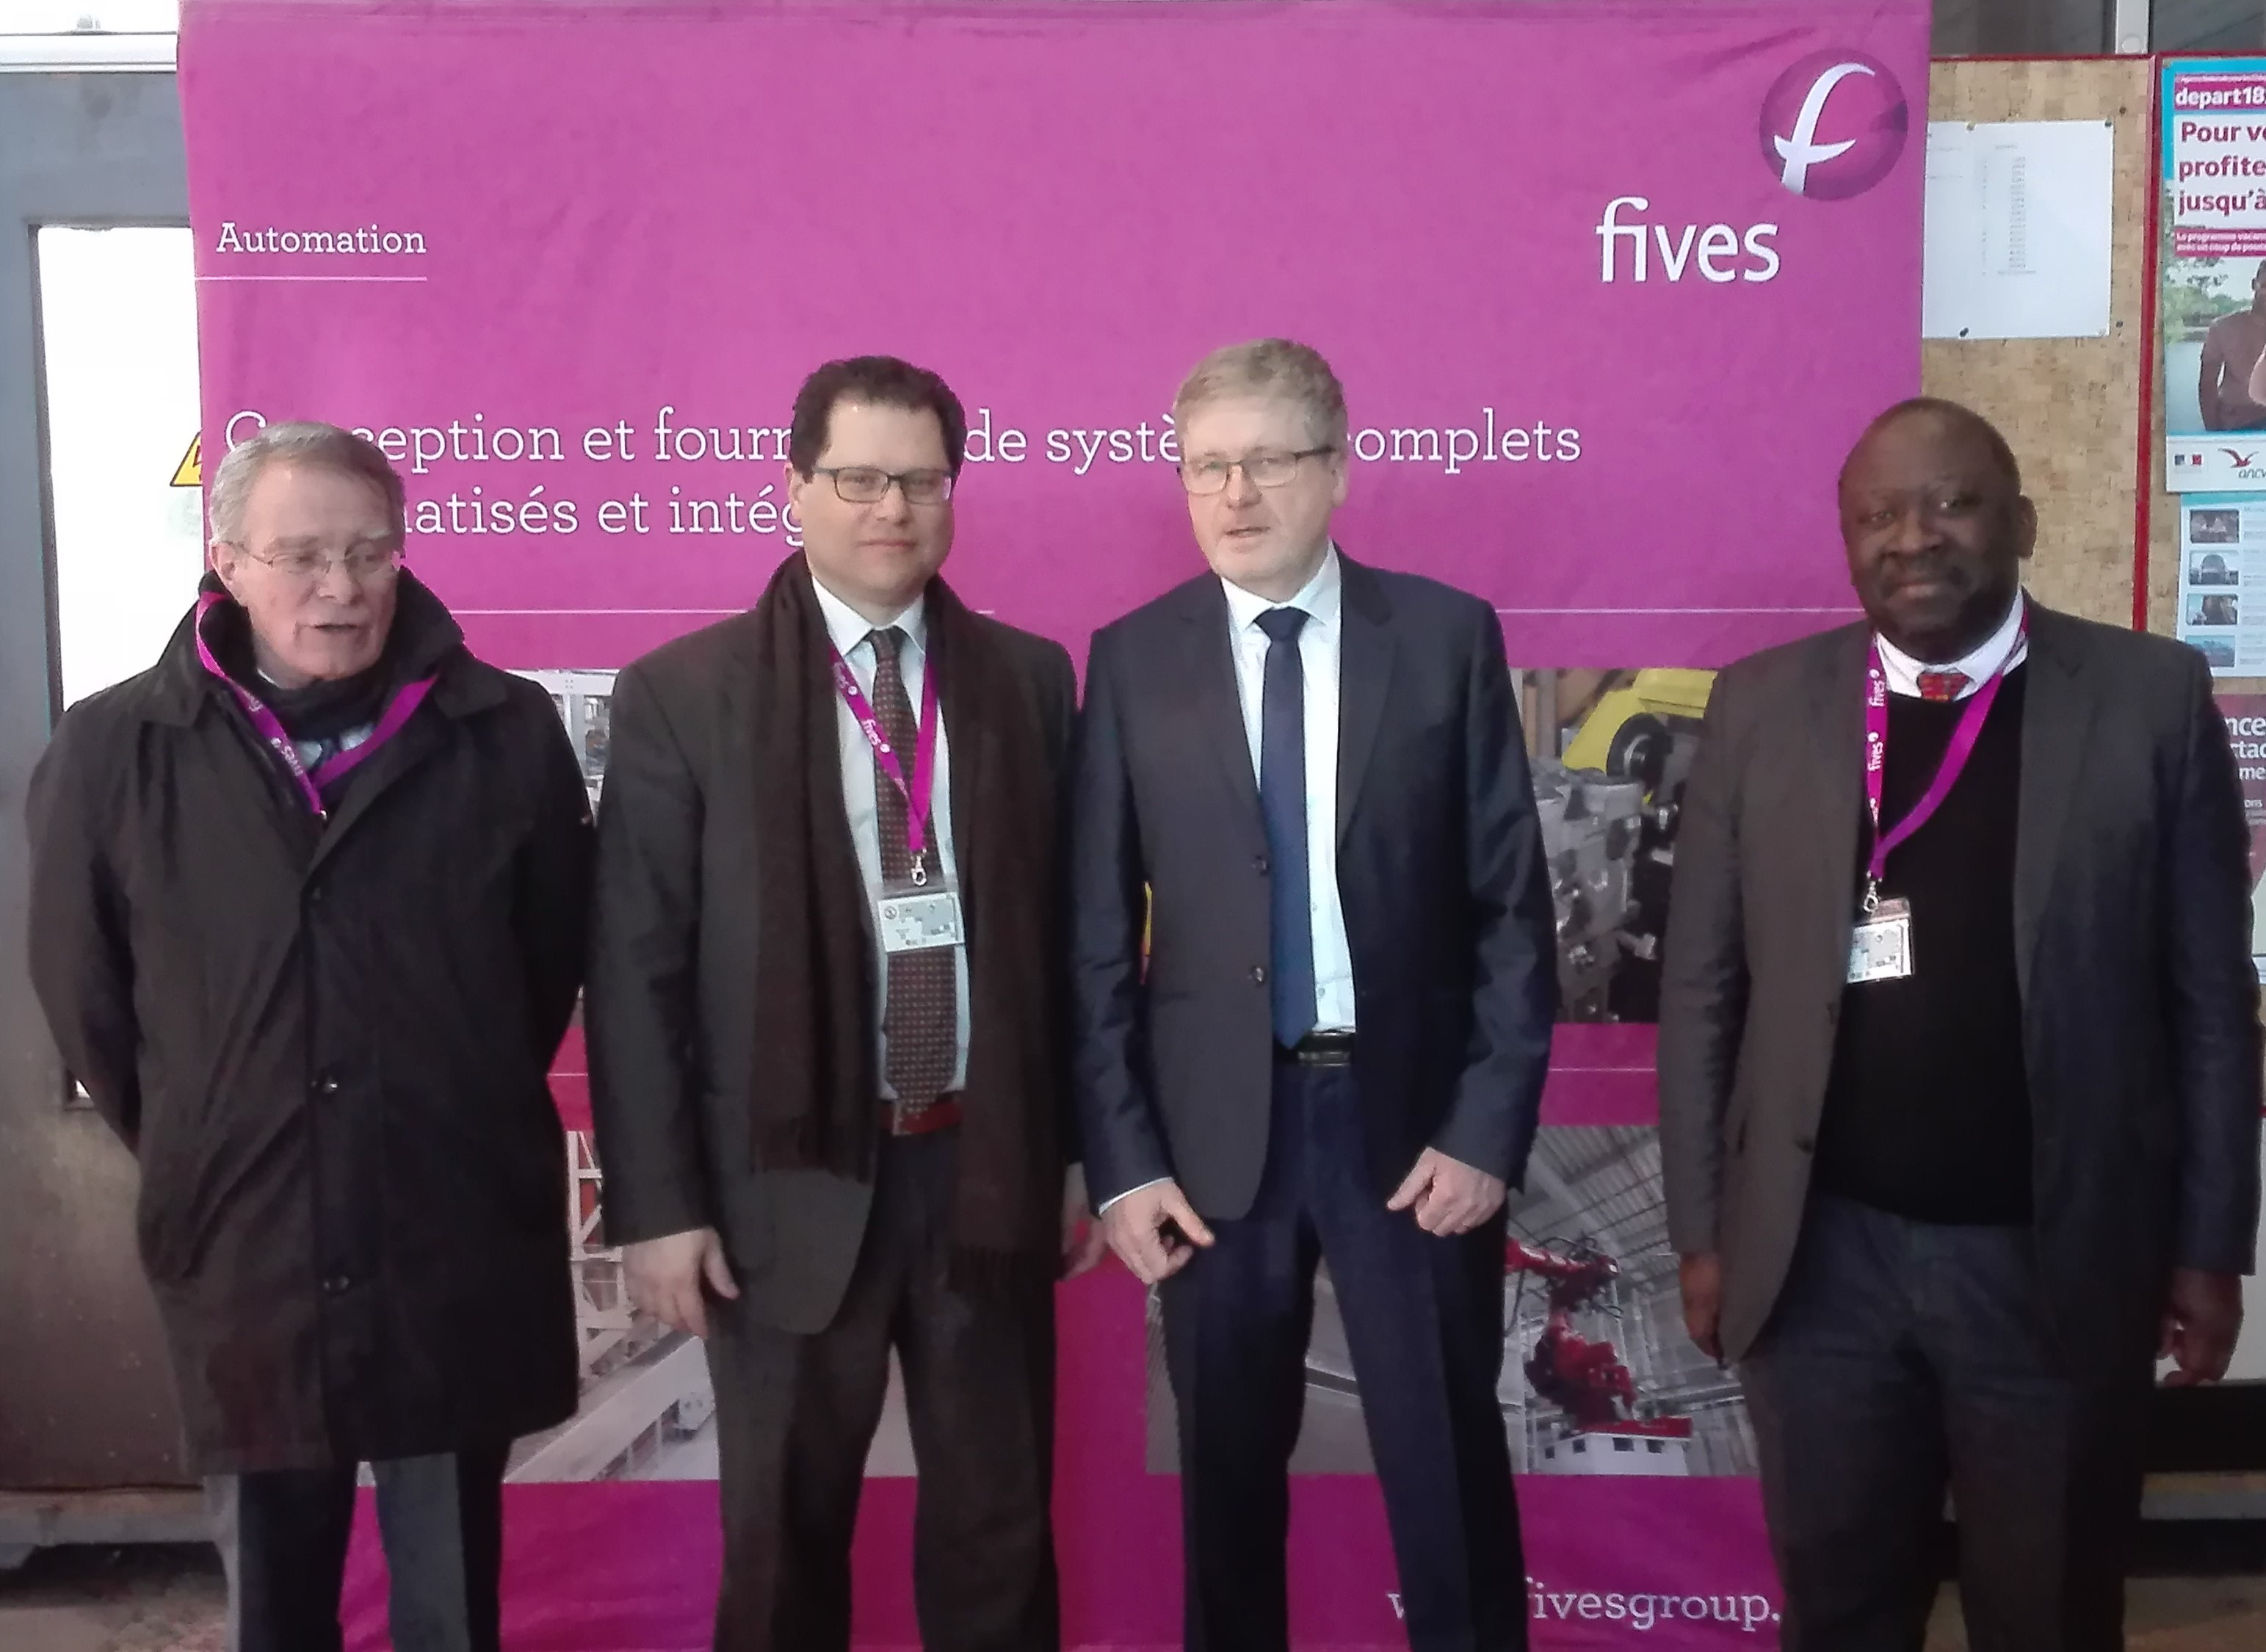 The new regional Prefet visited Fives